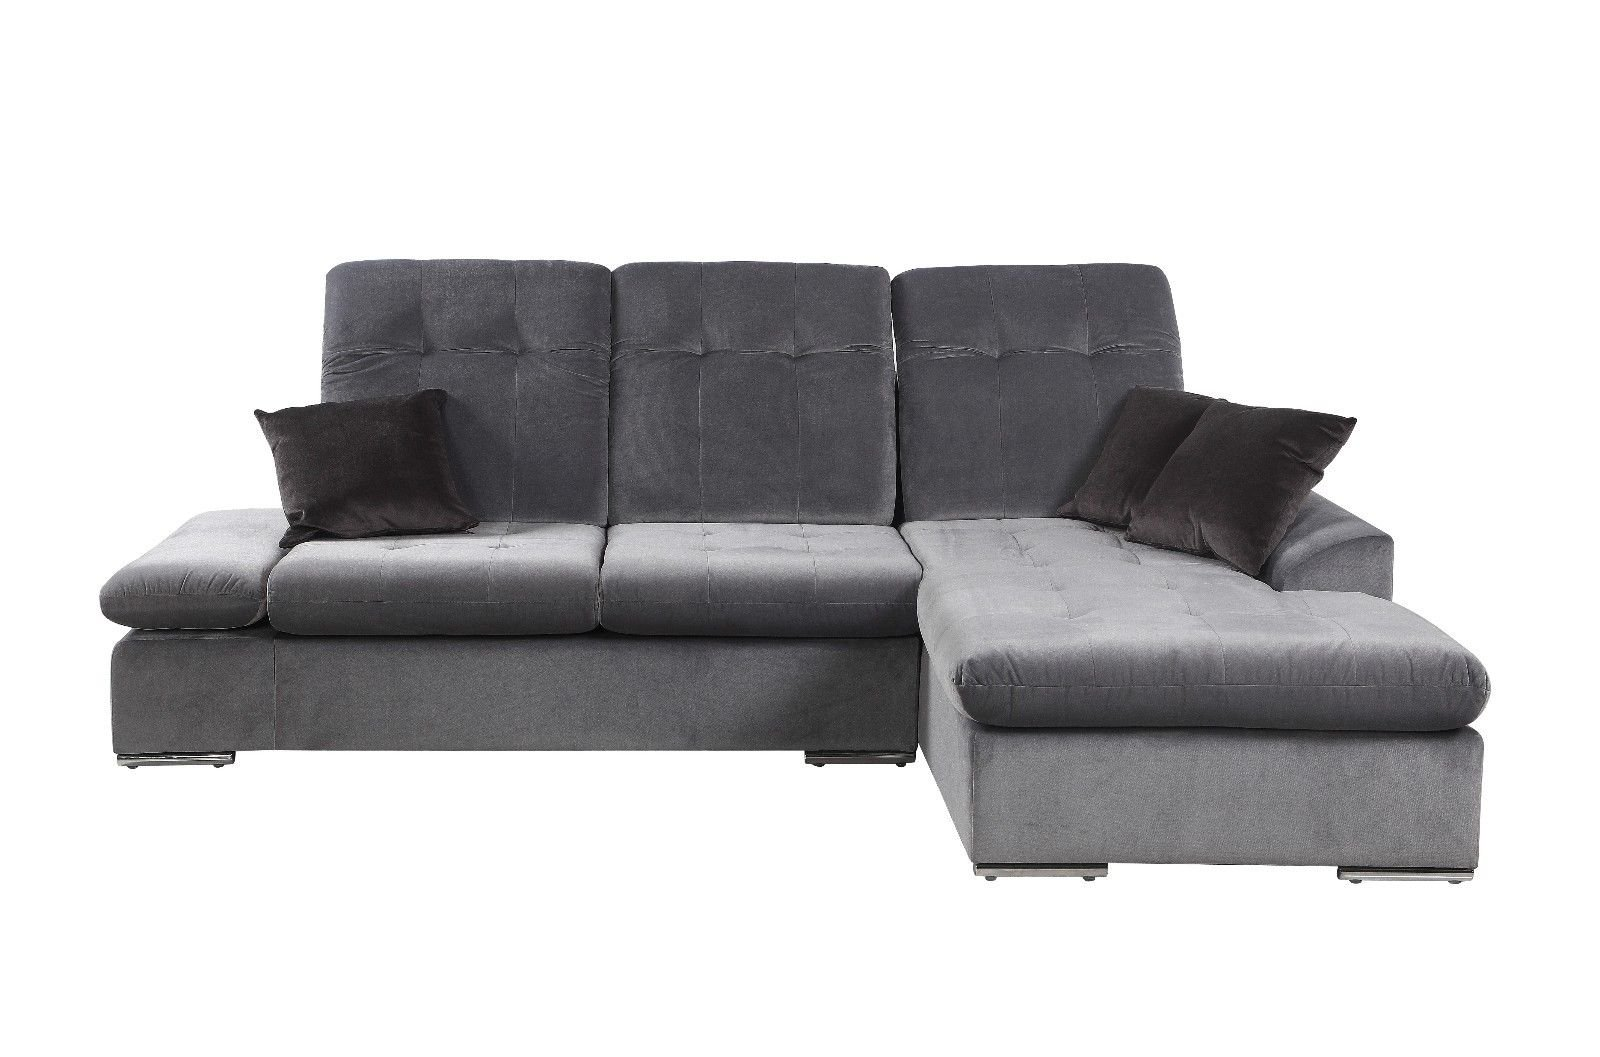 Modern Microfiber Sectional Sofa With Chaise L Shape